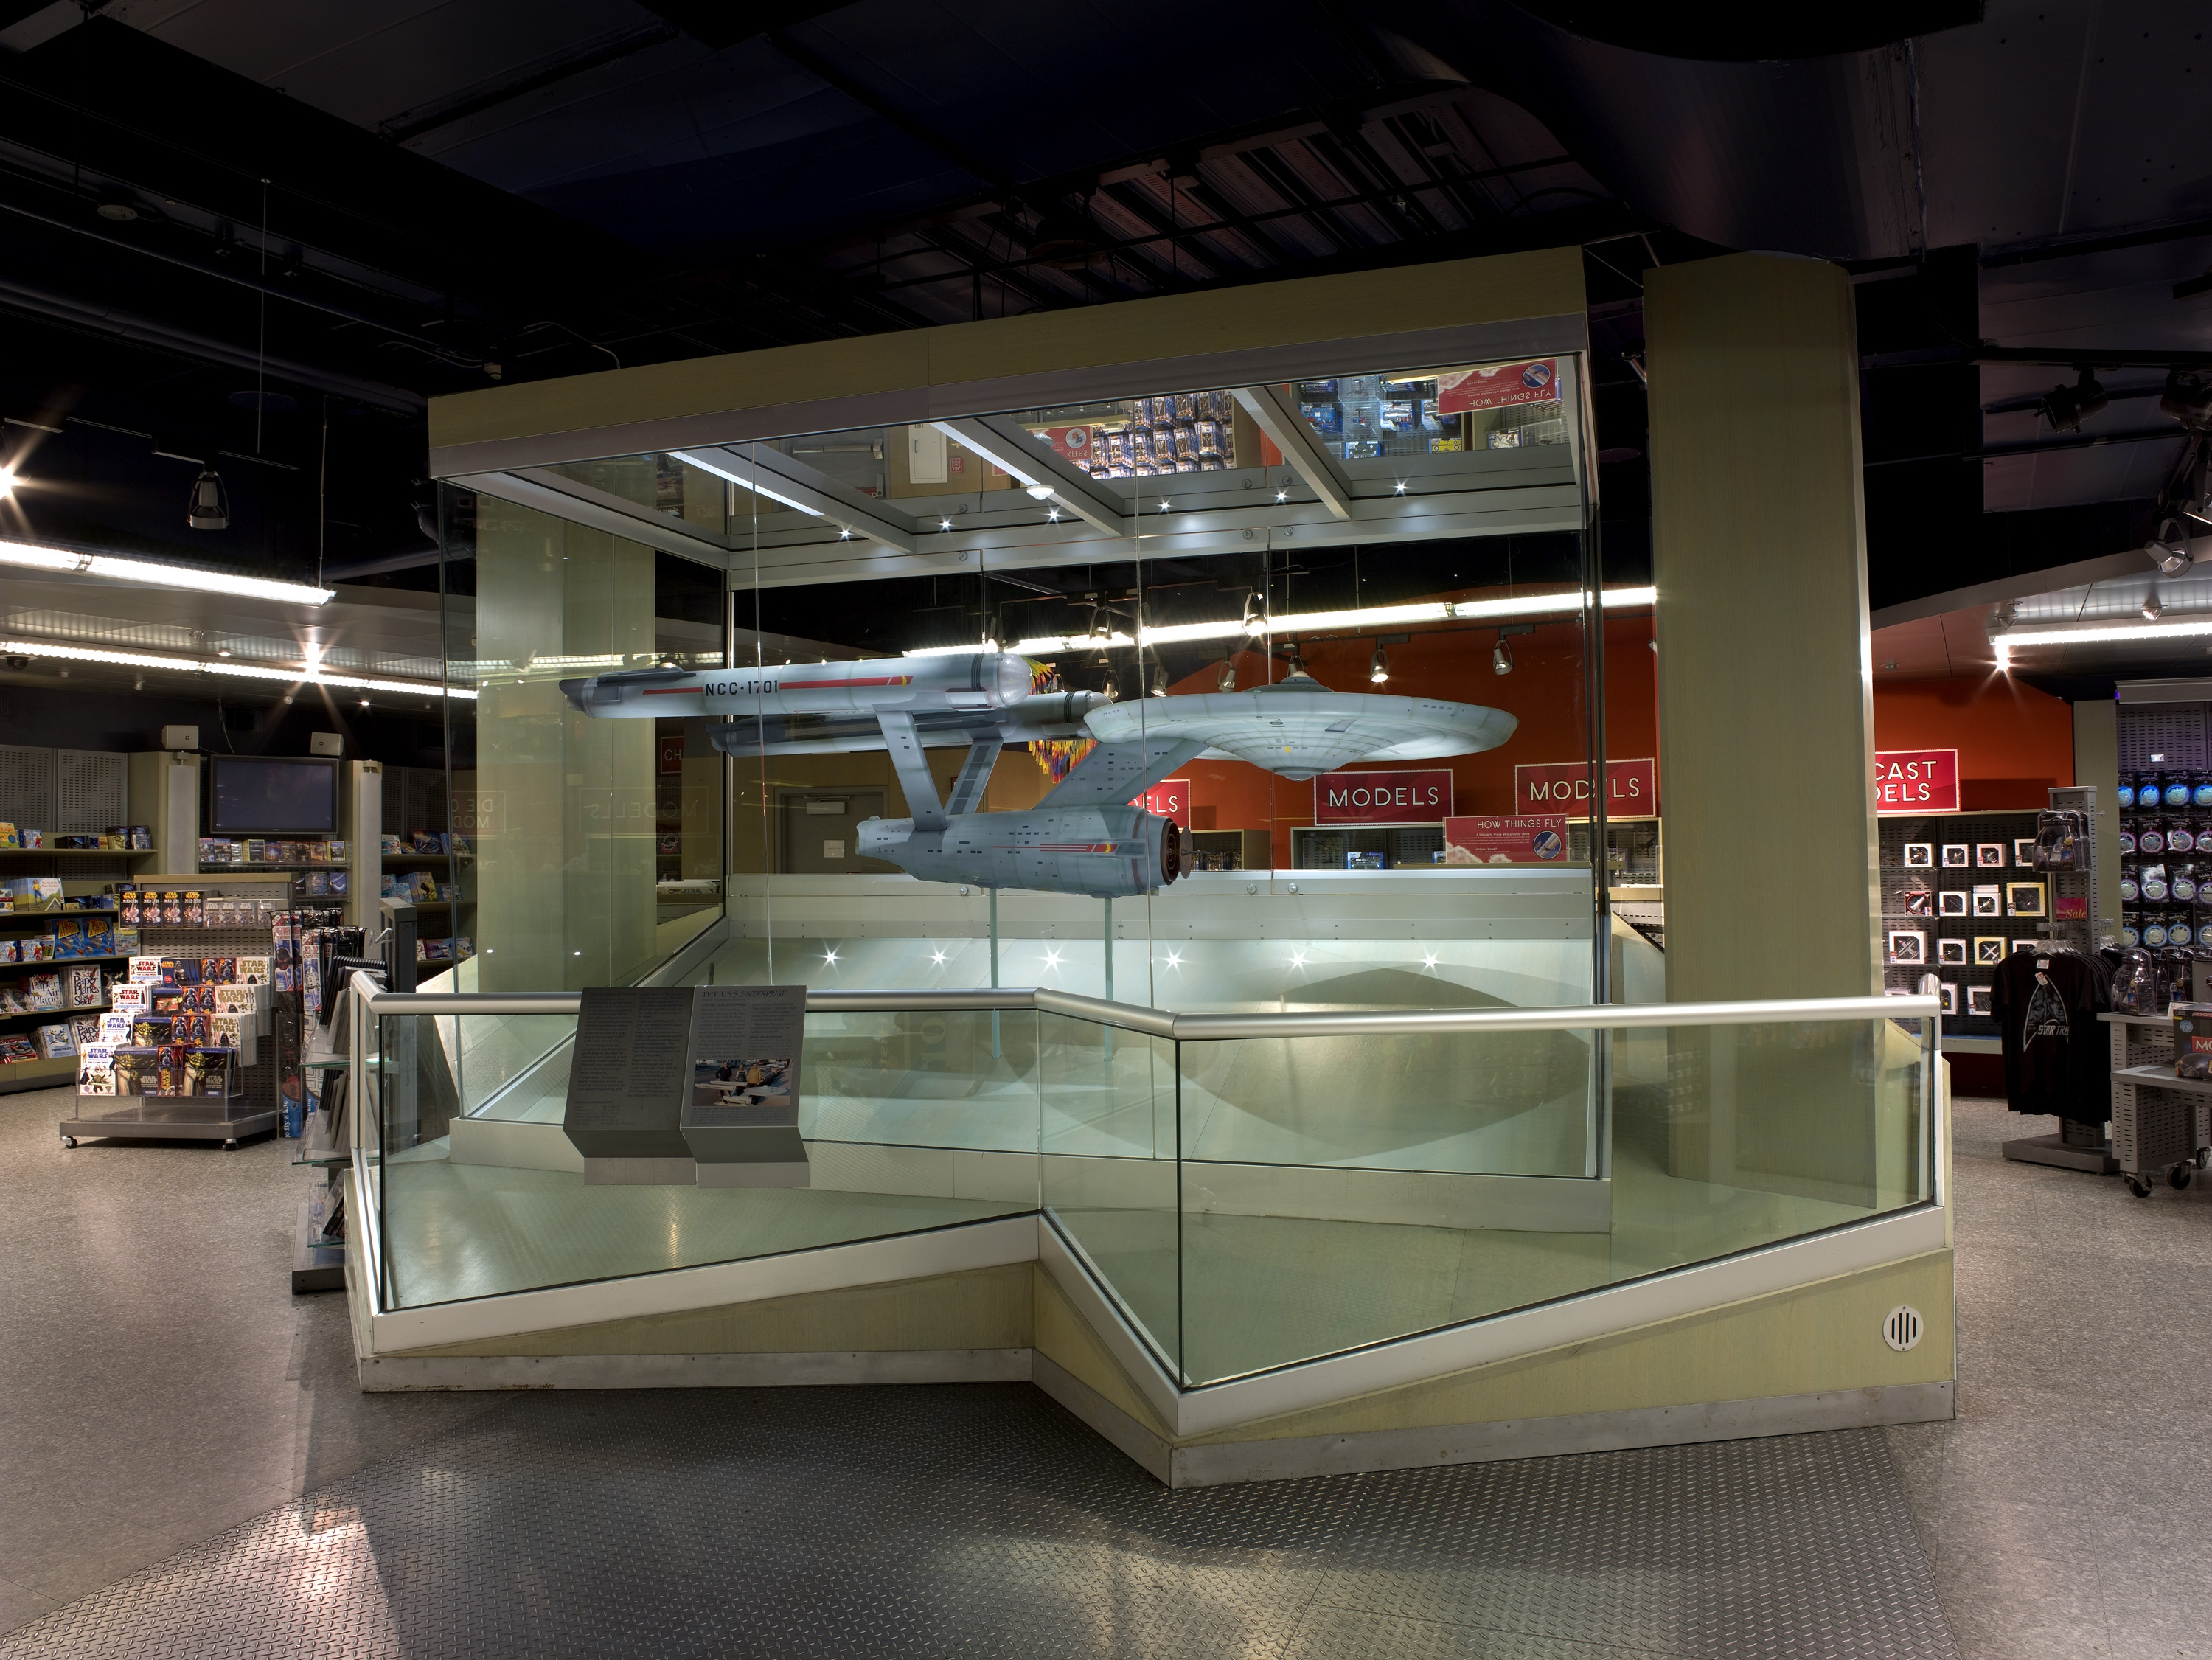 Star Trek Starship Enterprise Model on display in the Museum Shop